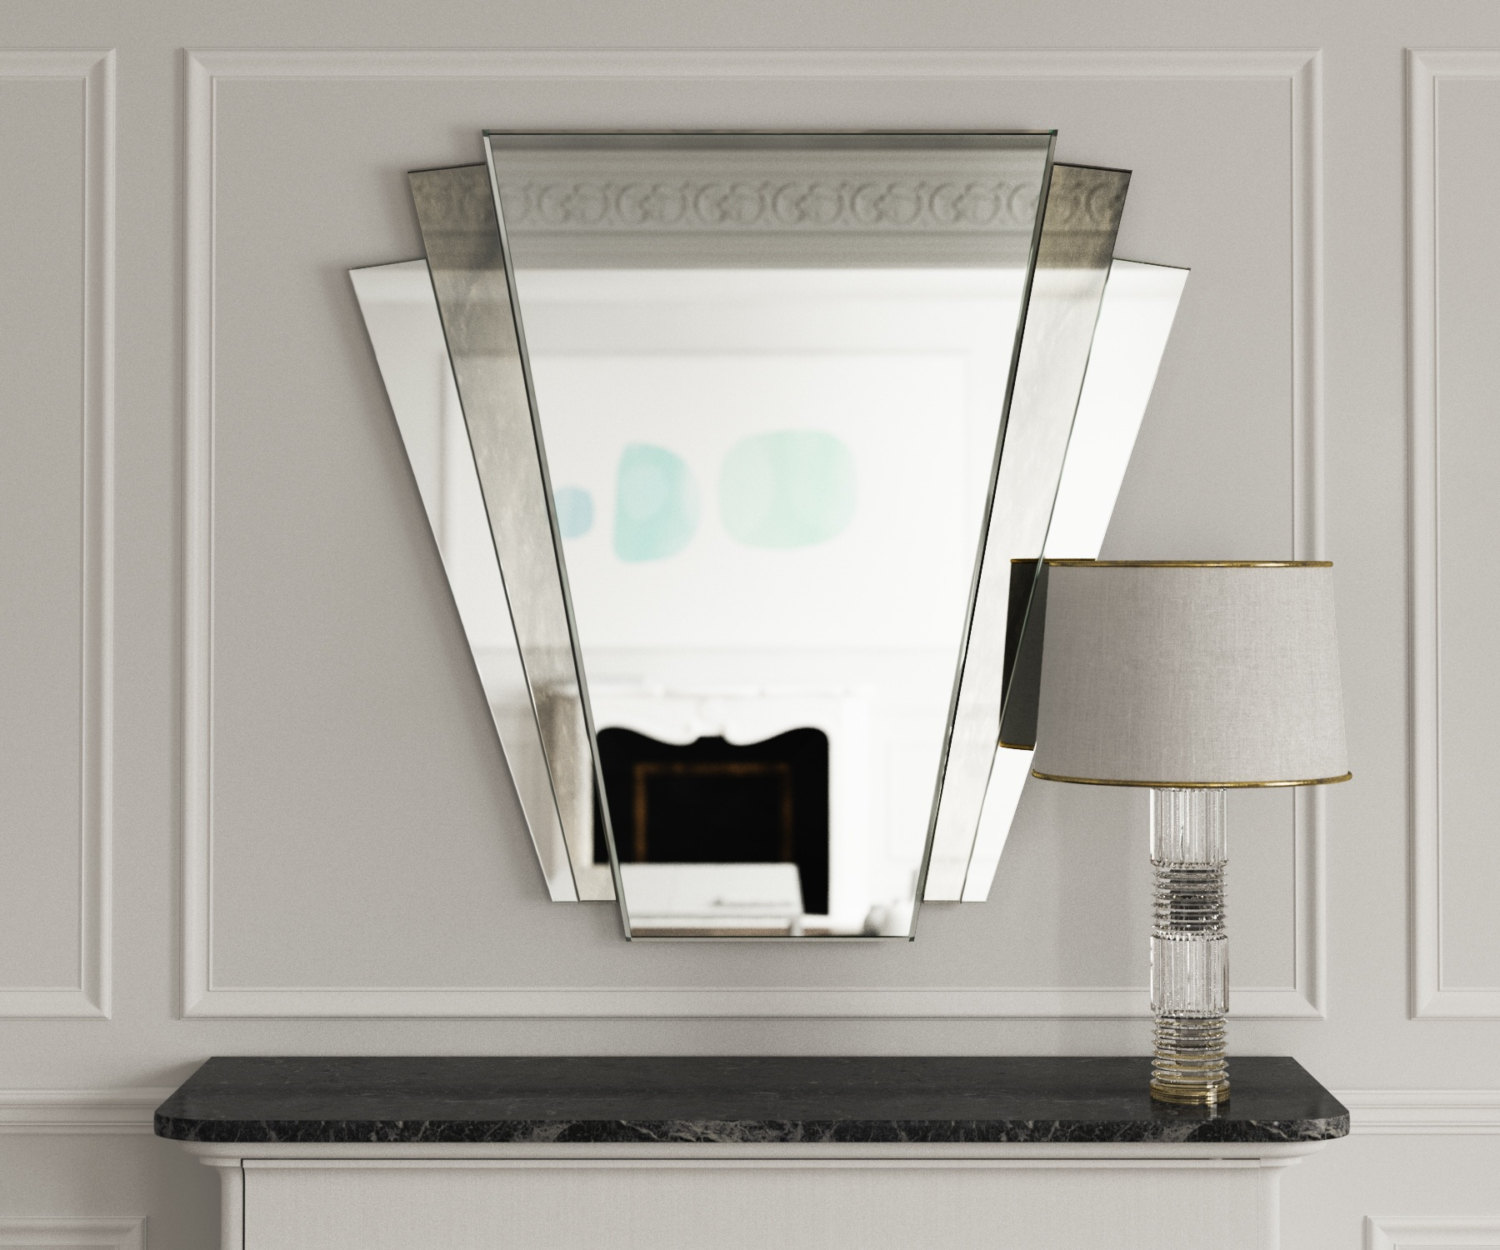 Fan Deco Mirror in Situ. See what's currently available here